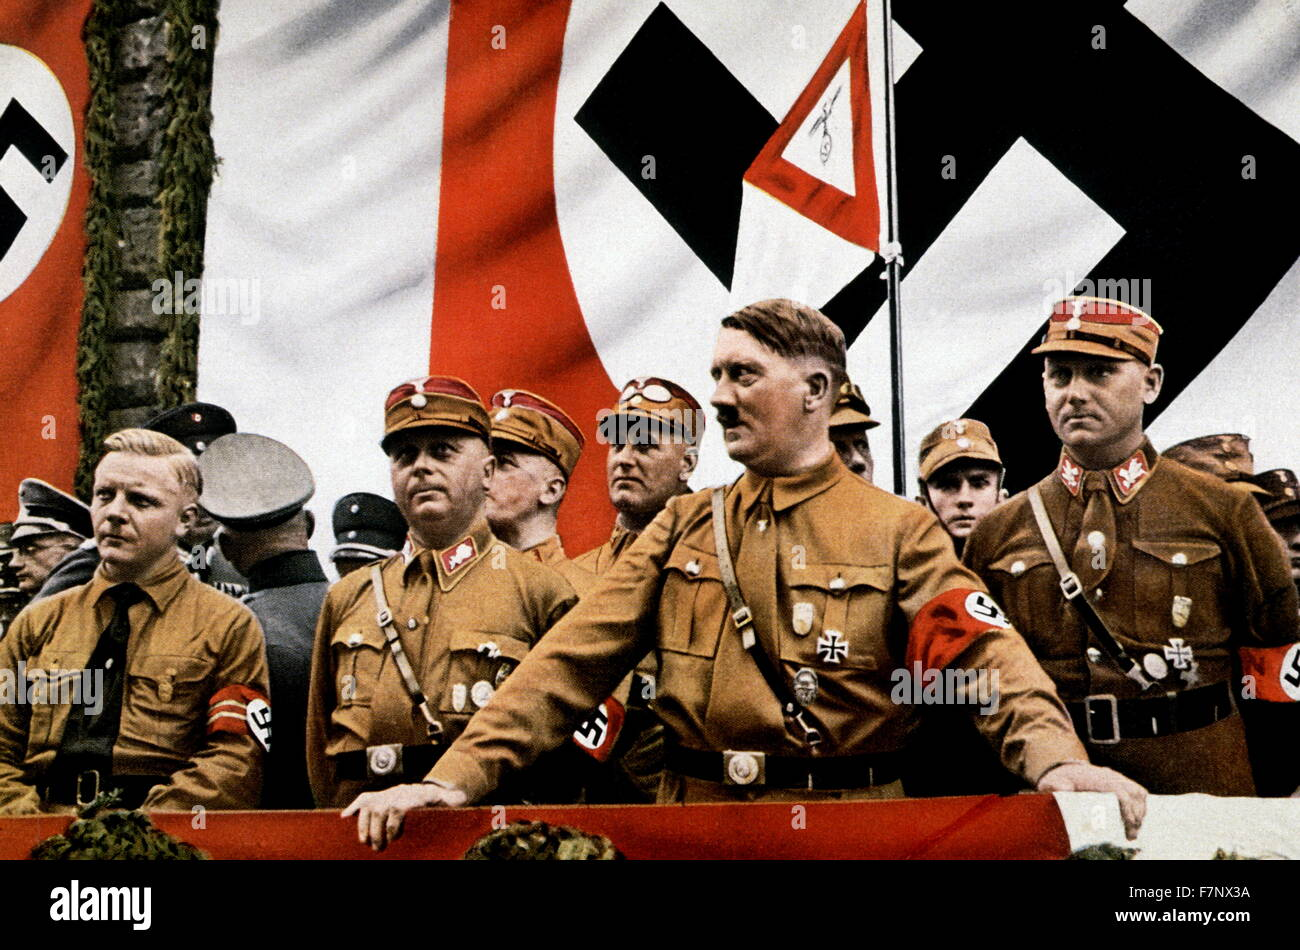 Hitler and other SA leaders at a rally in Germany circa 1935 Stock Photo